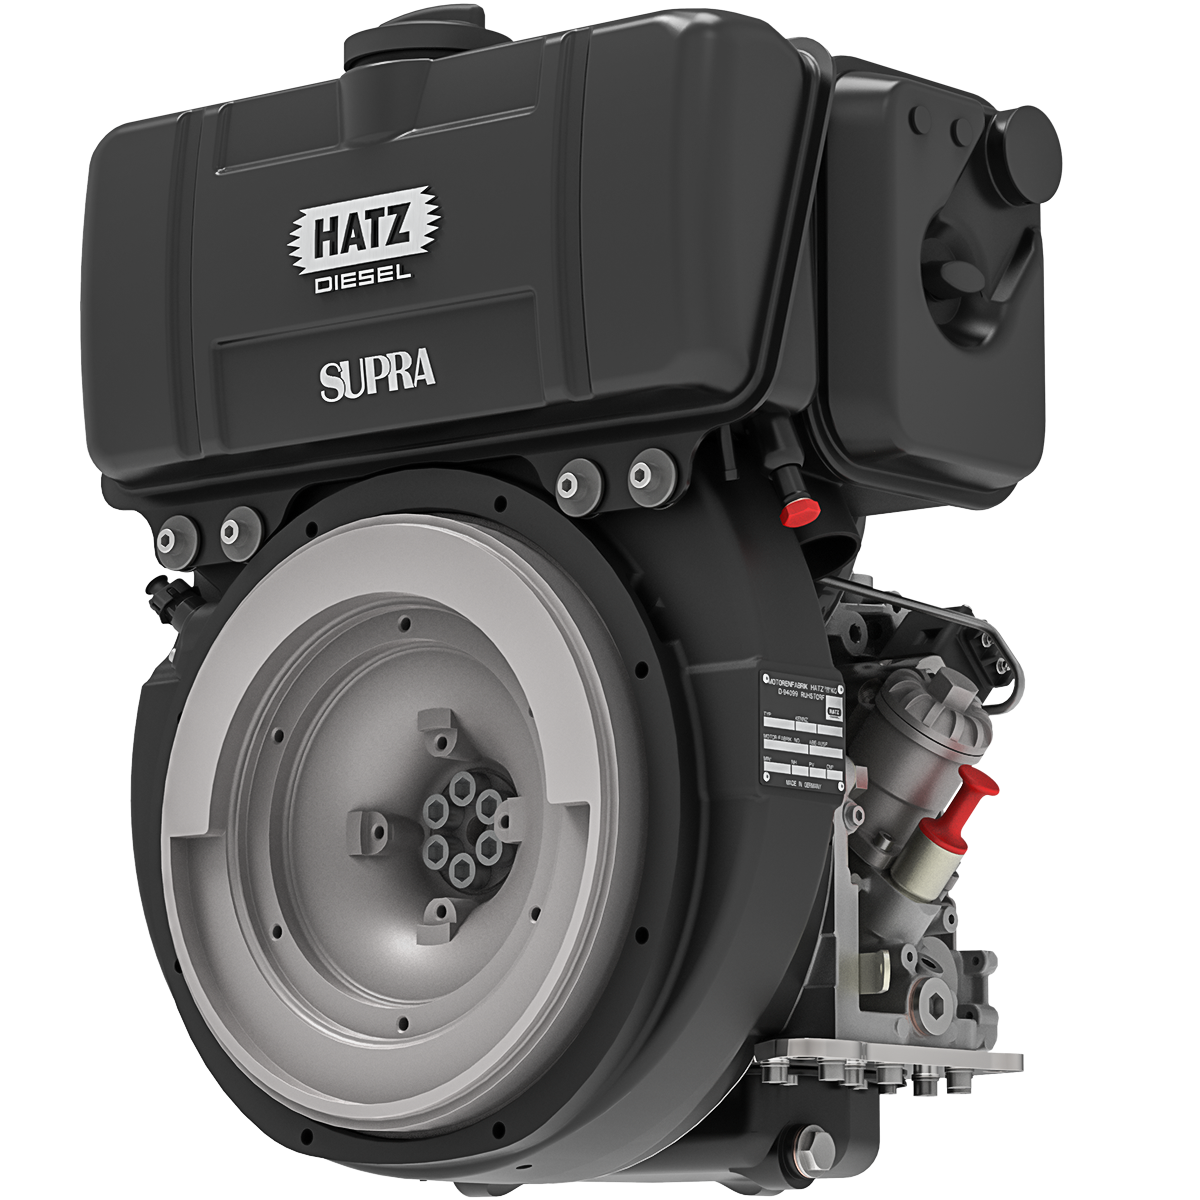 single-cylinder engines for the digital future